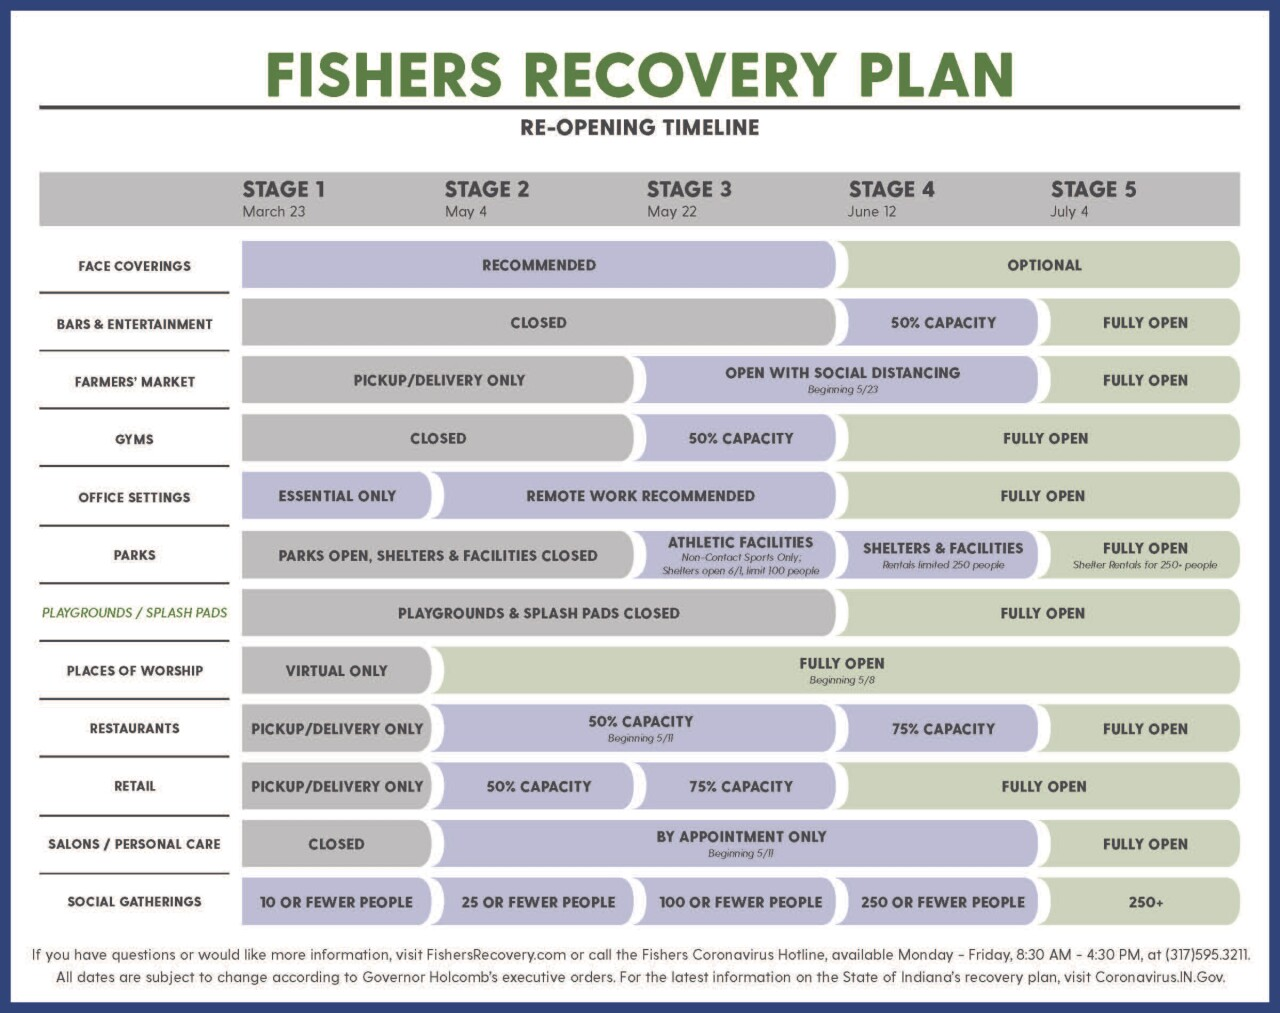 Fishers2020_COVID19_FishersRecoverPlan_UPDATED_6-11.jpg